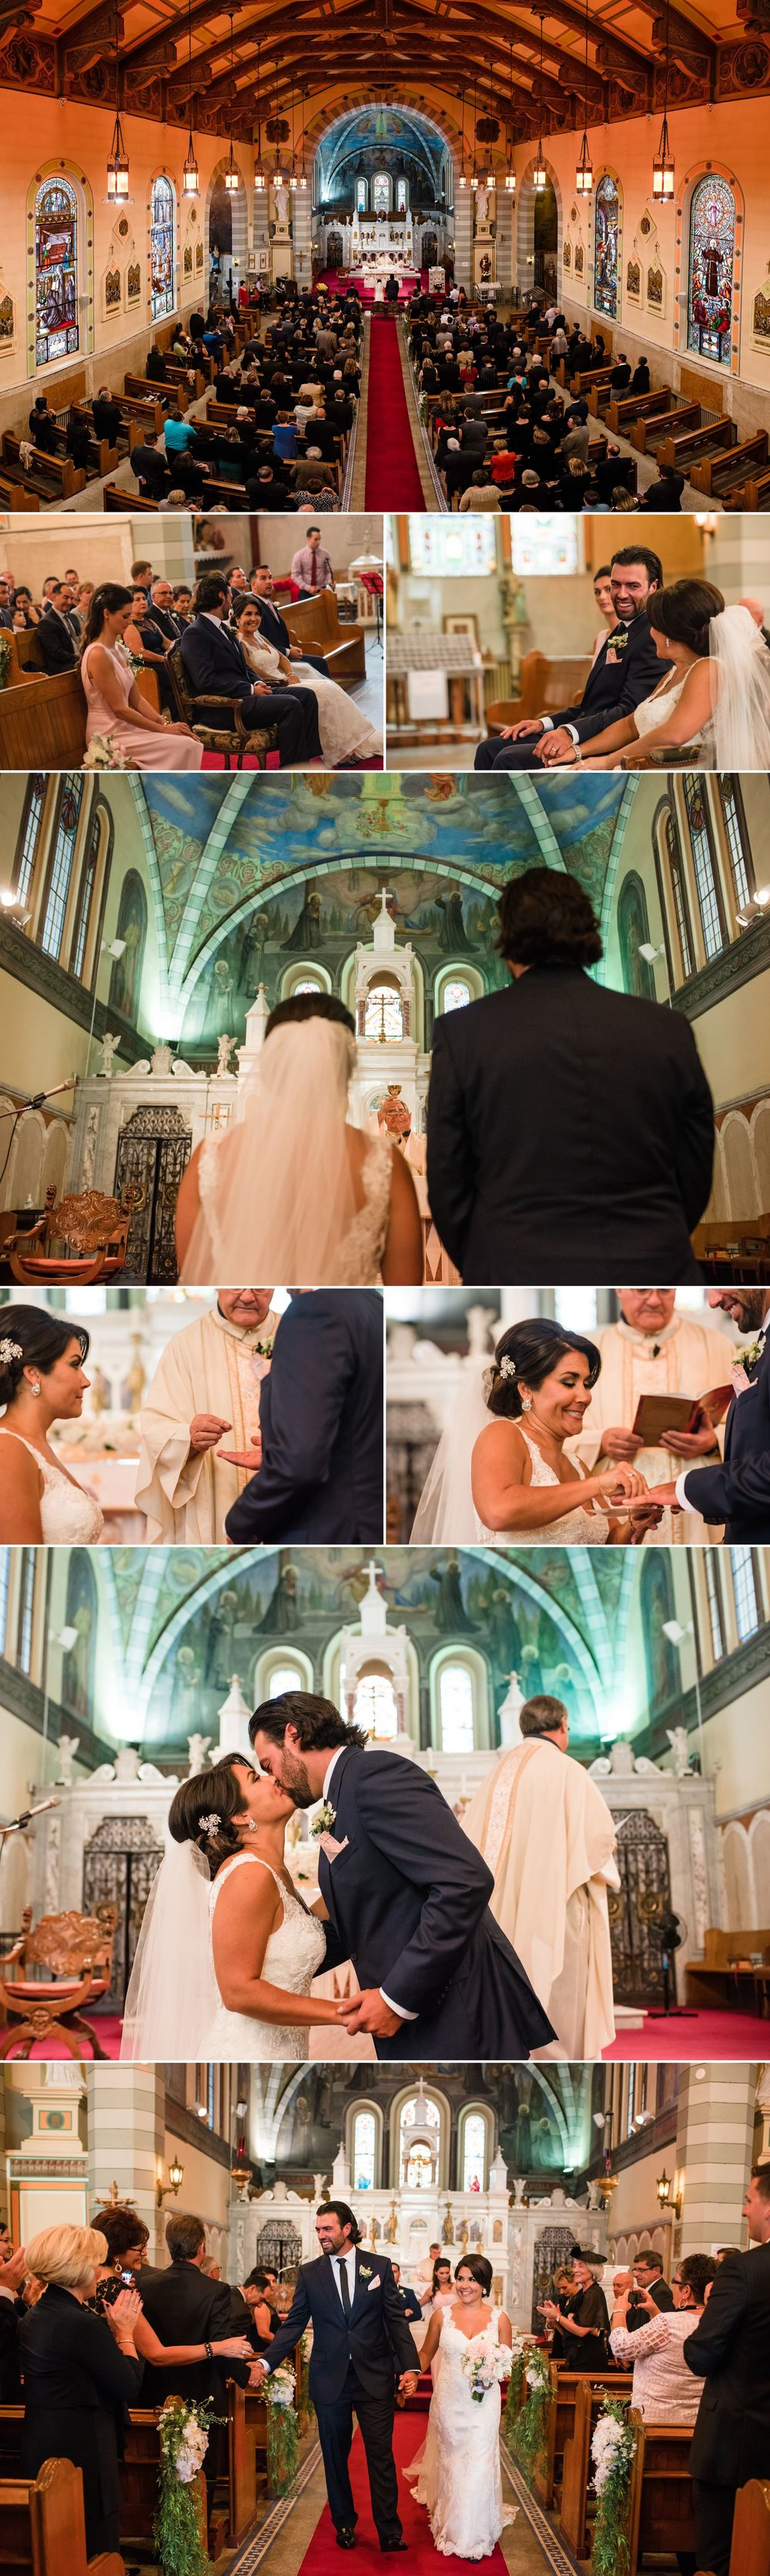 A wedding ceremony at St.Anthony's Church in Little Italy, Ottawa.